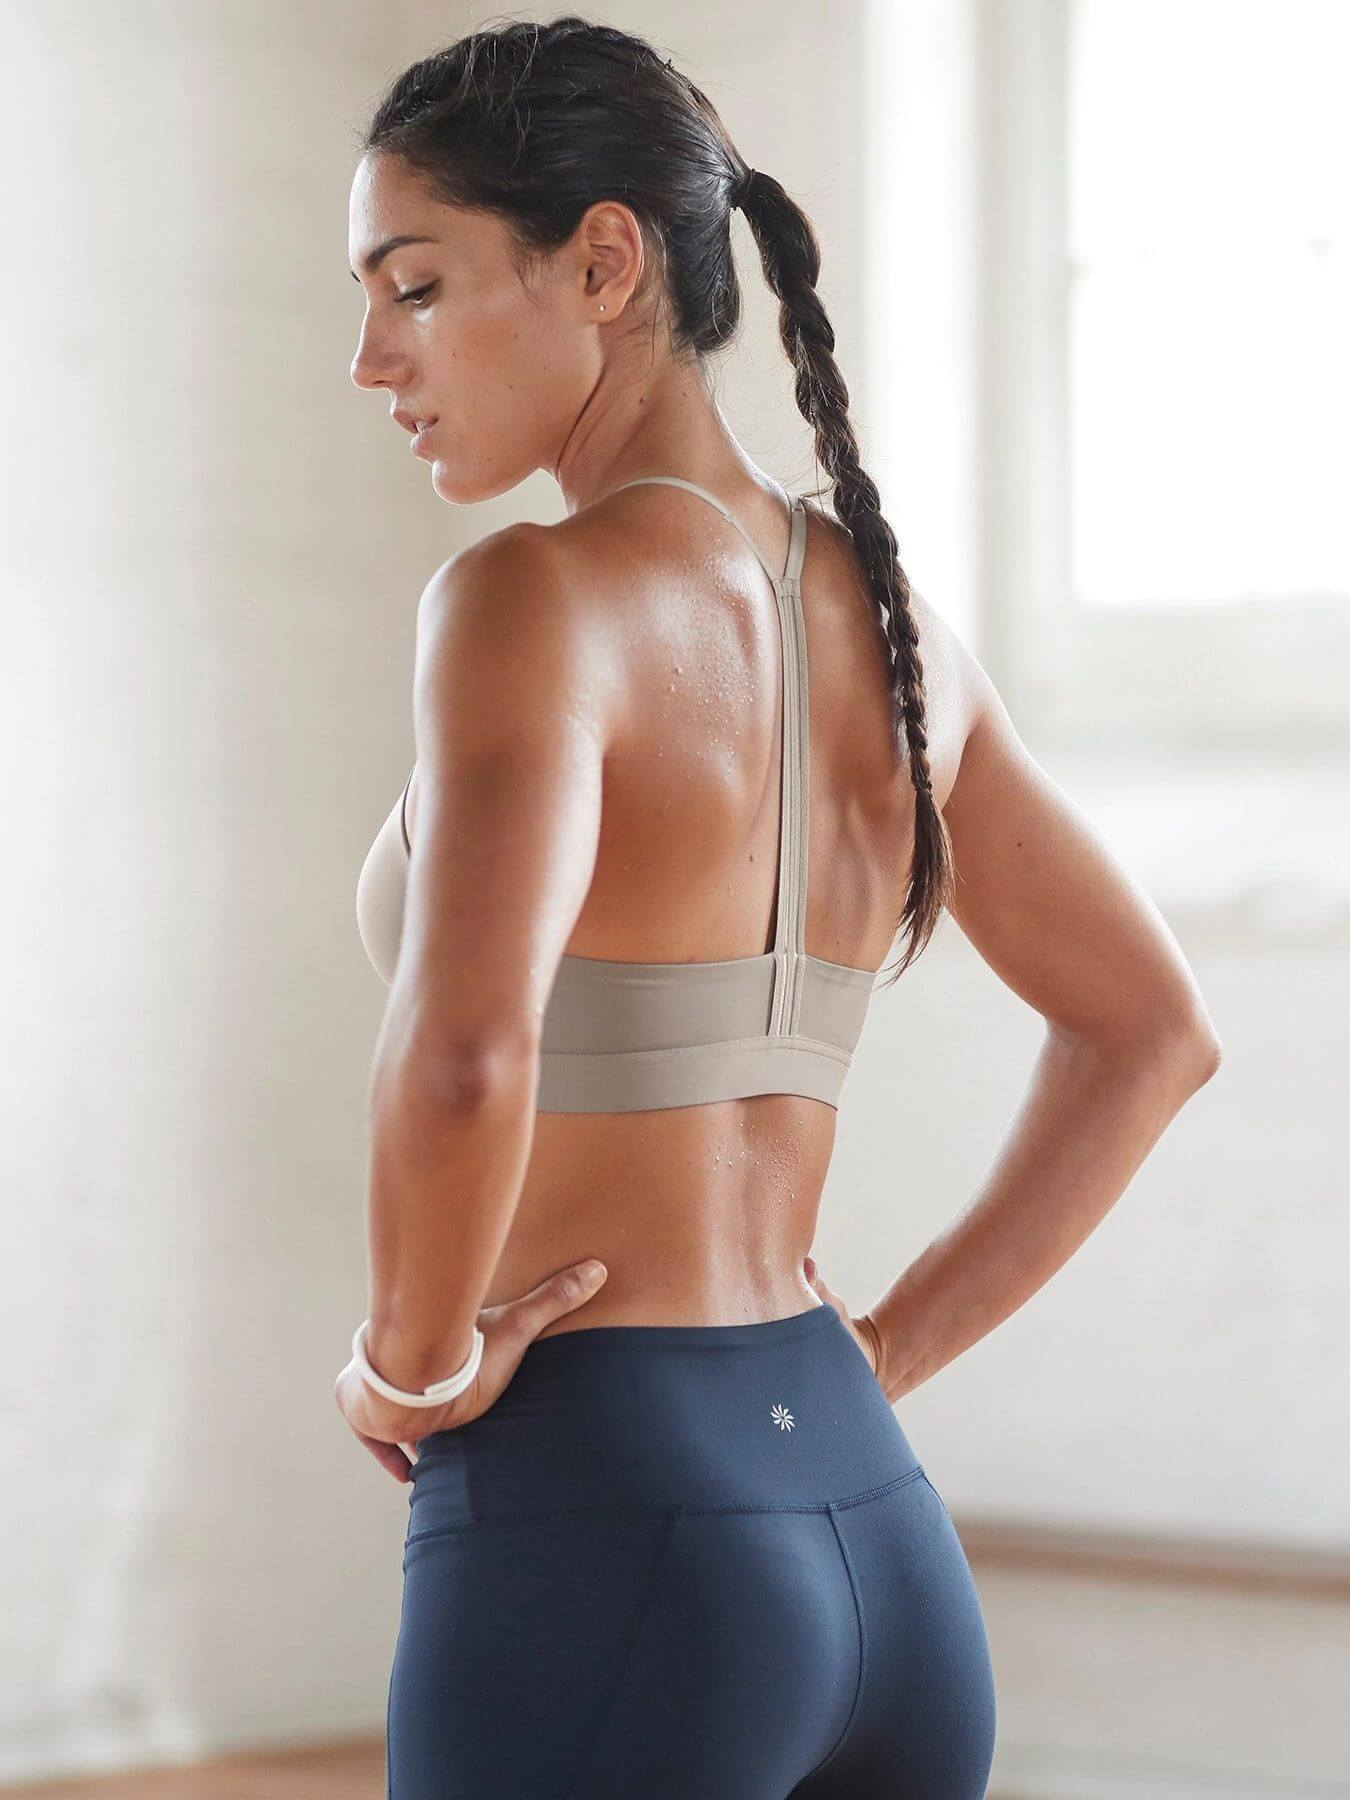 Allison Stokke Sexy Back